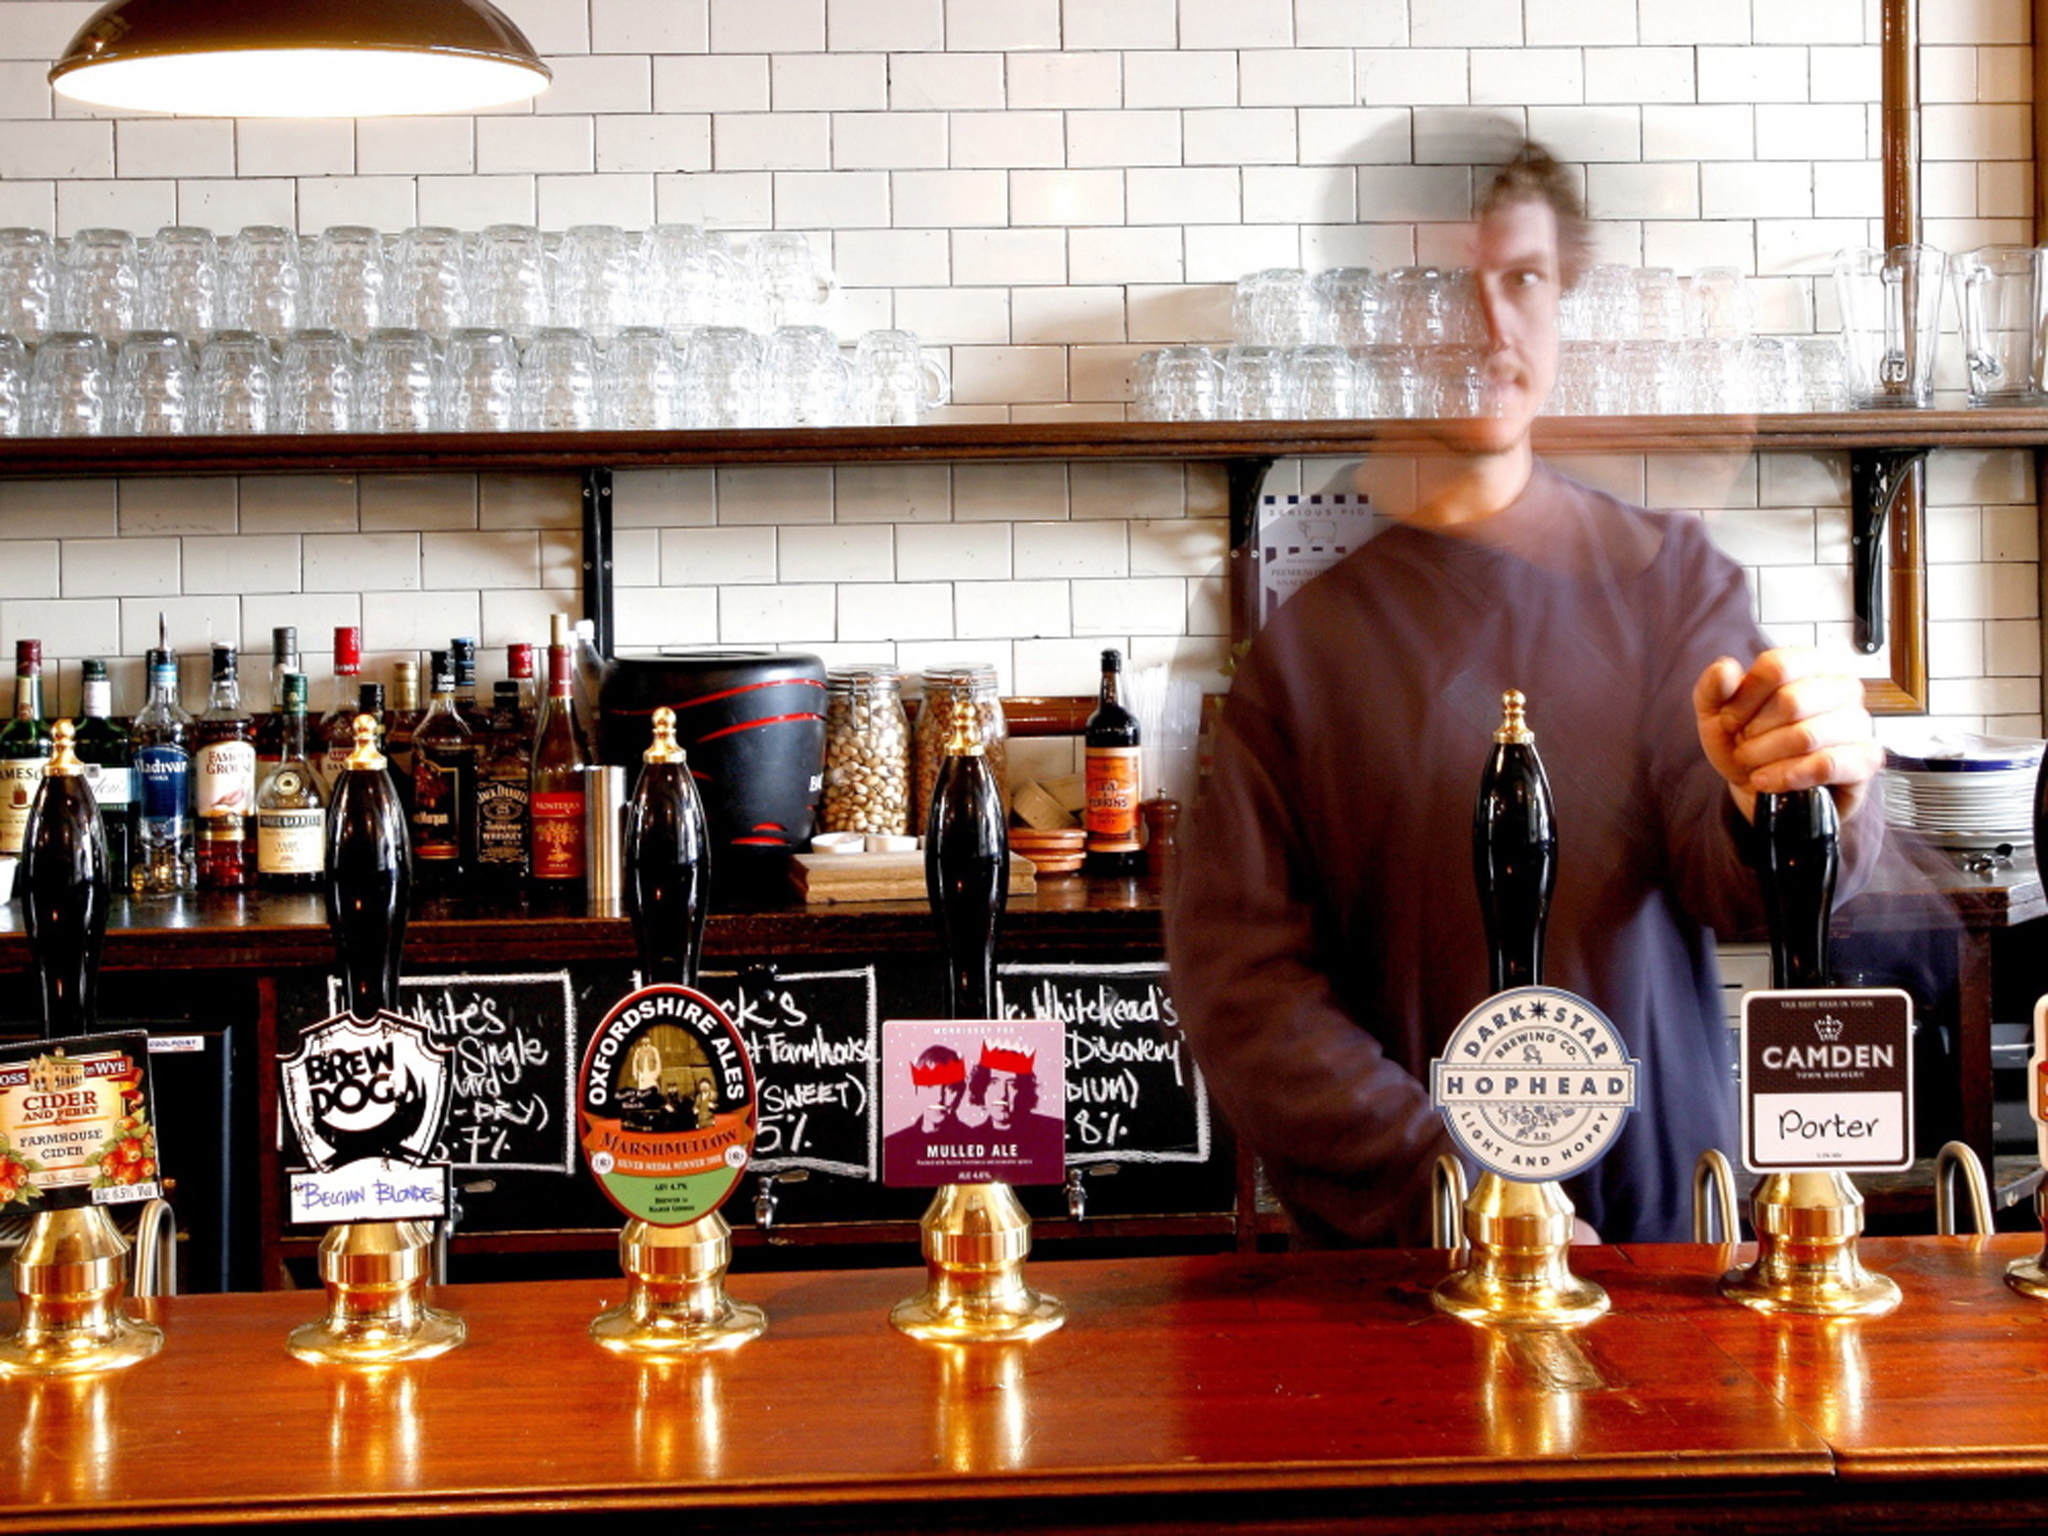 London's best cider pubs